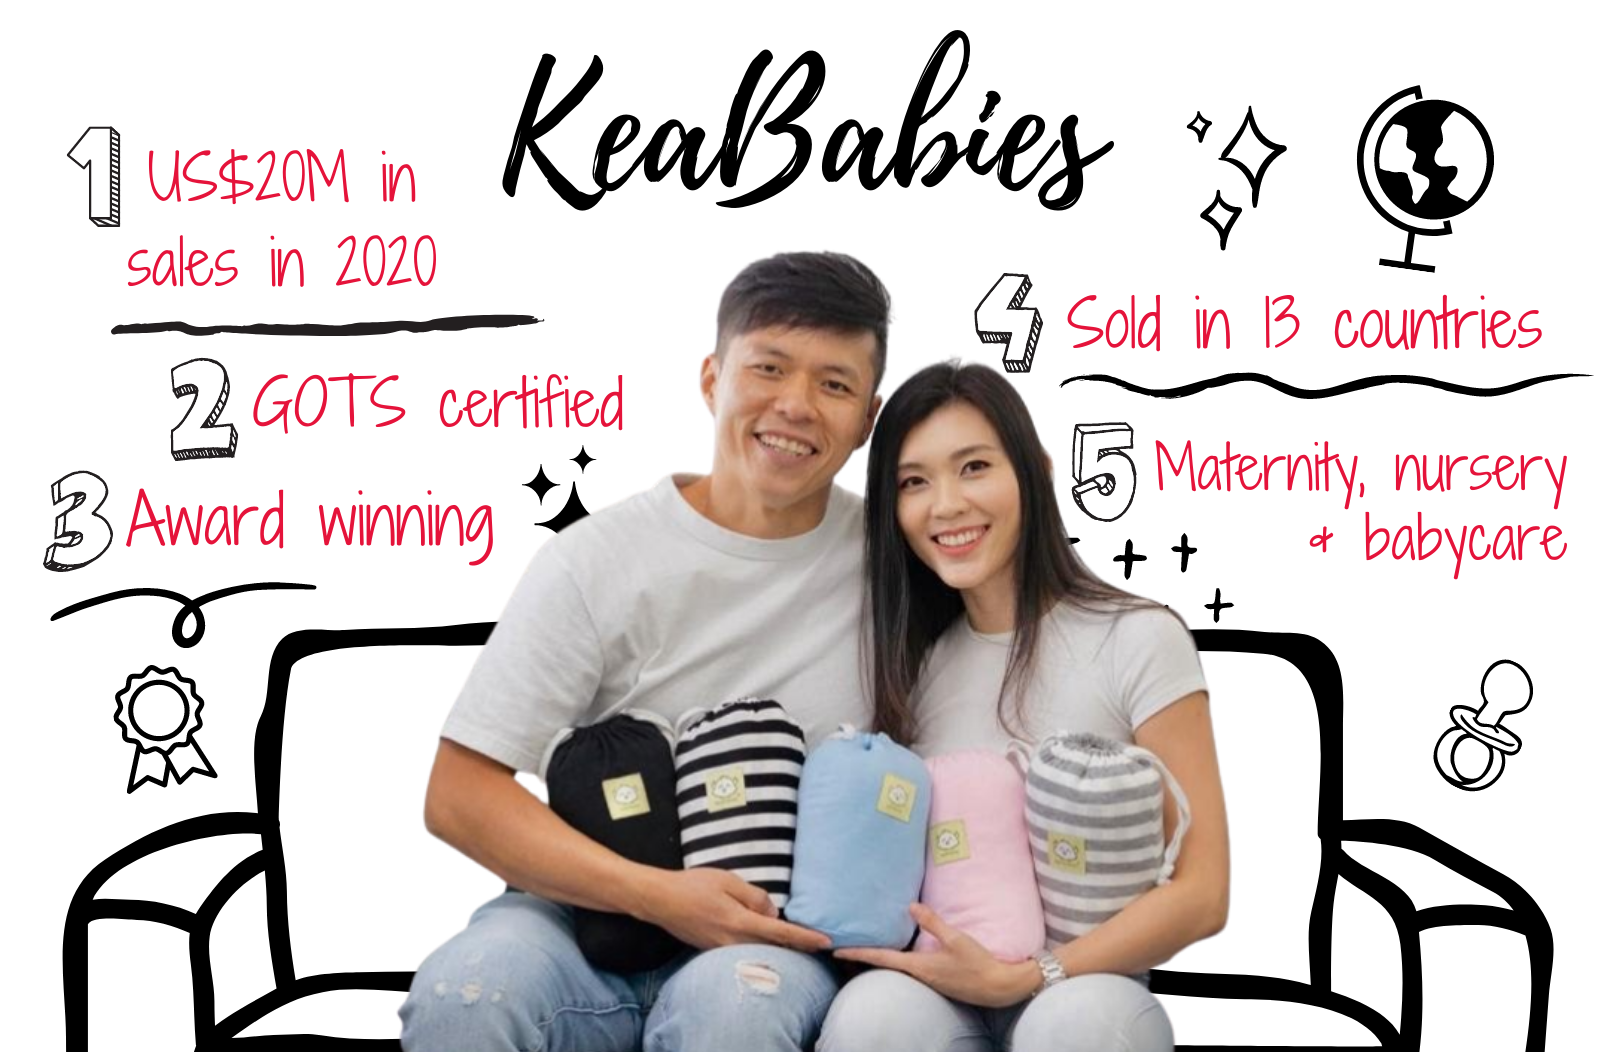 No baby steps for global business KeaBabies